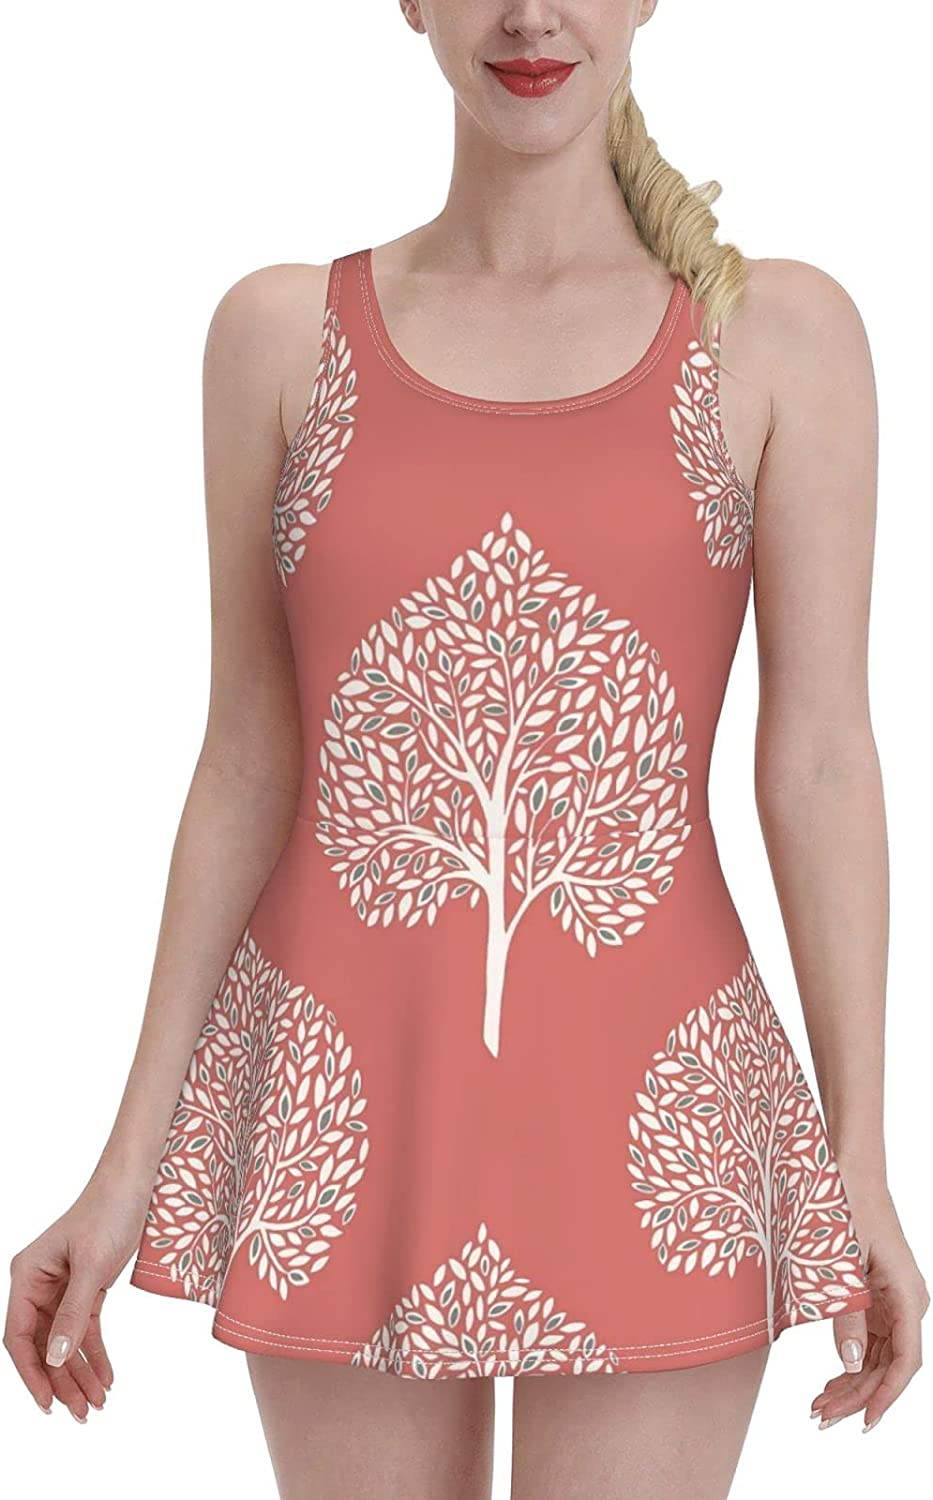 White Tree Ladies Ruffled One-Piece with Str Adjustable Swimsuit Super intense Very popular SALE